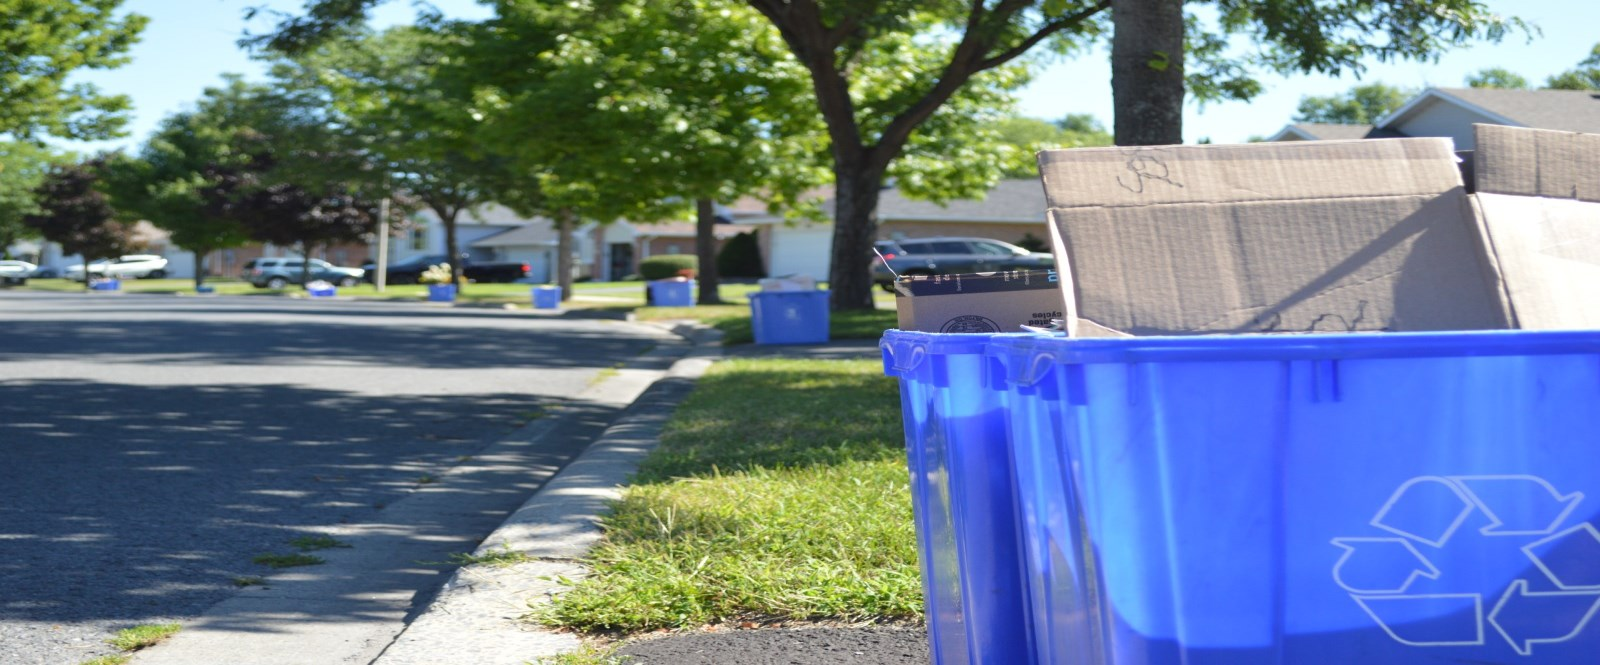 Blue recycling bins along residential Cornwall street